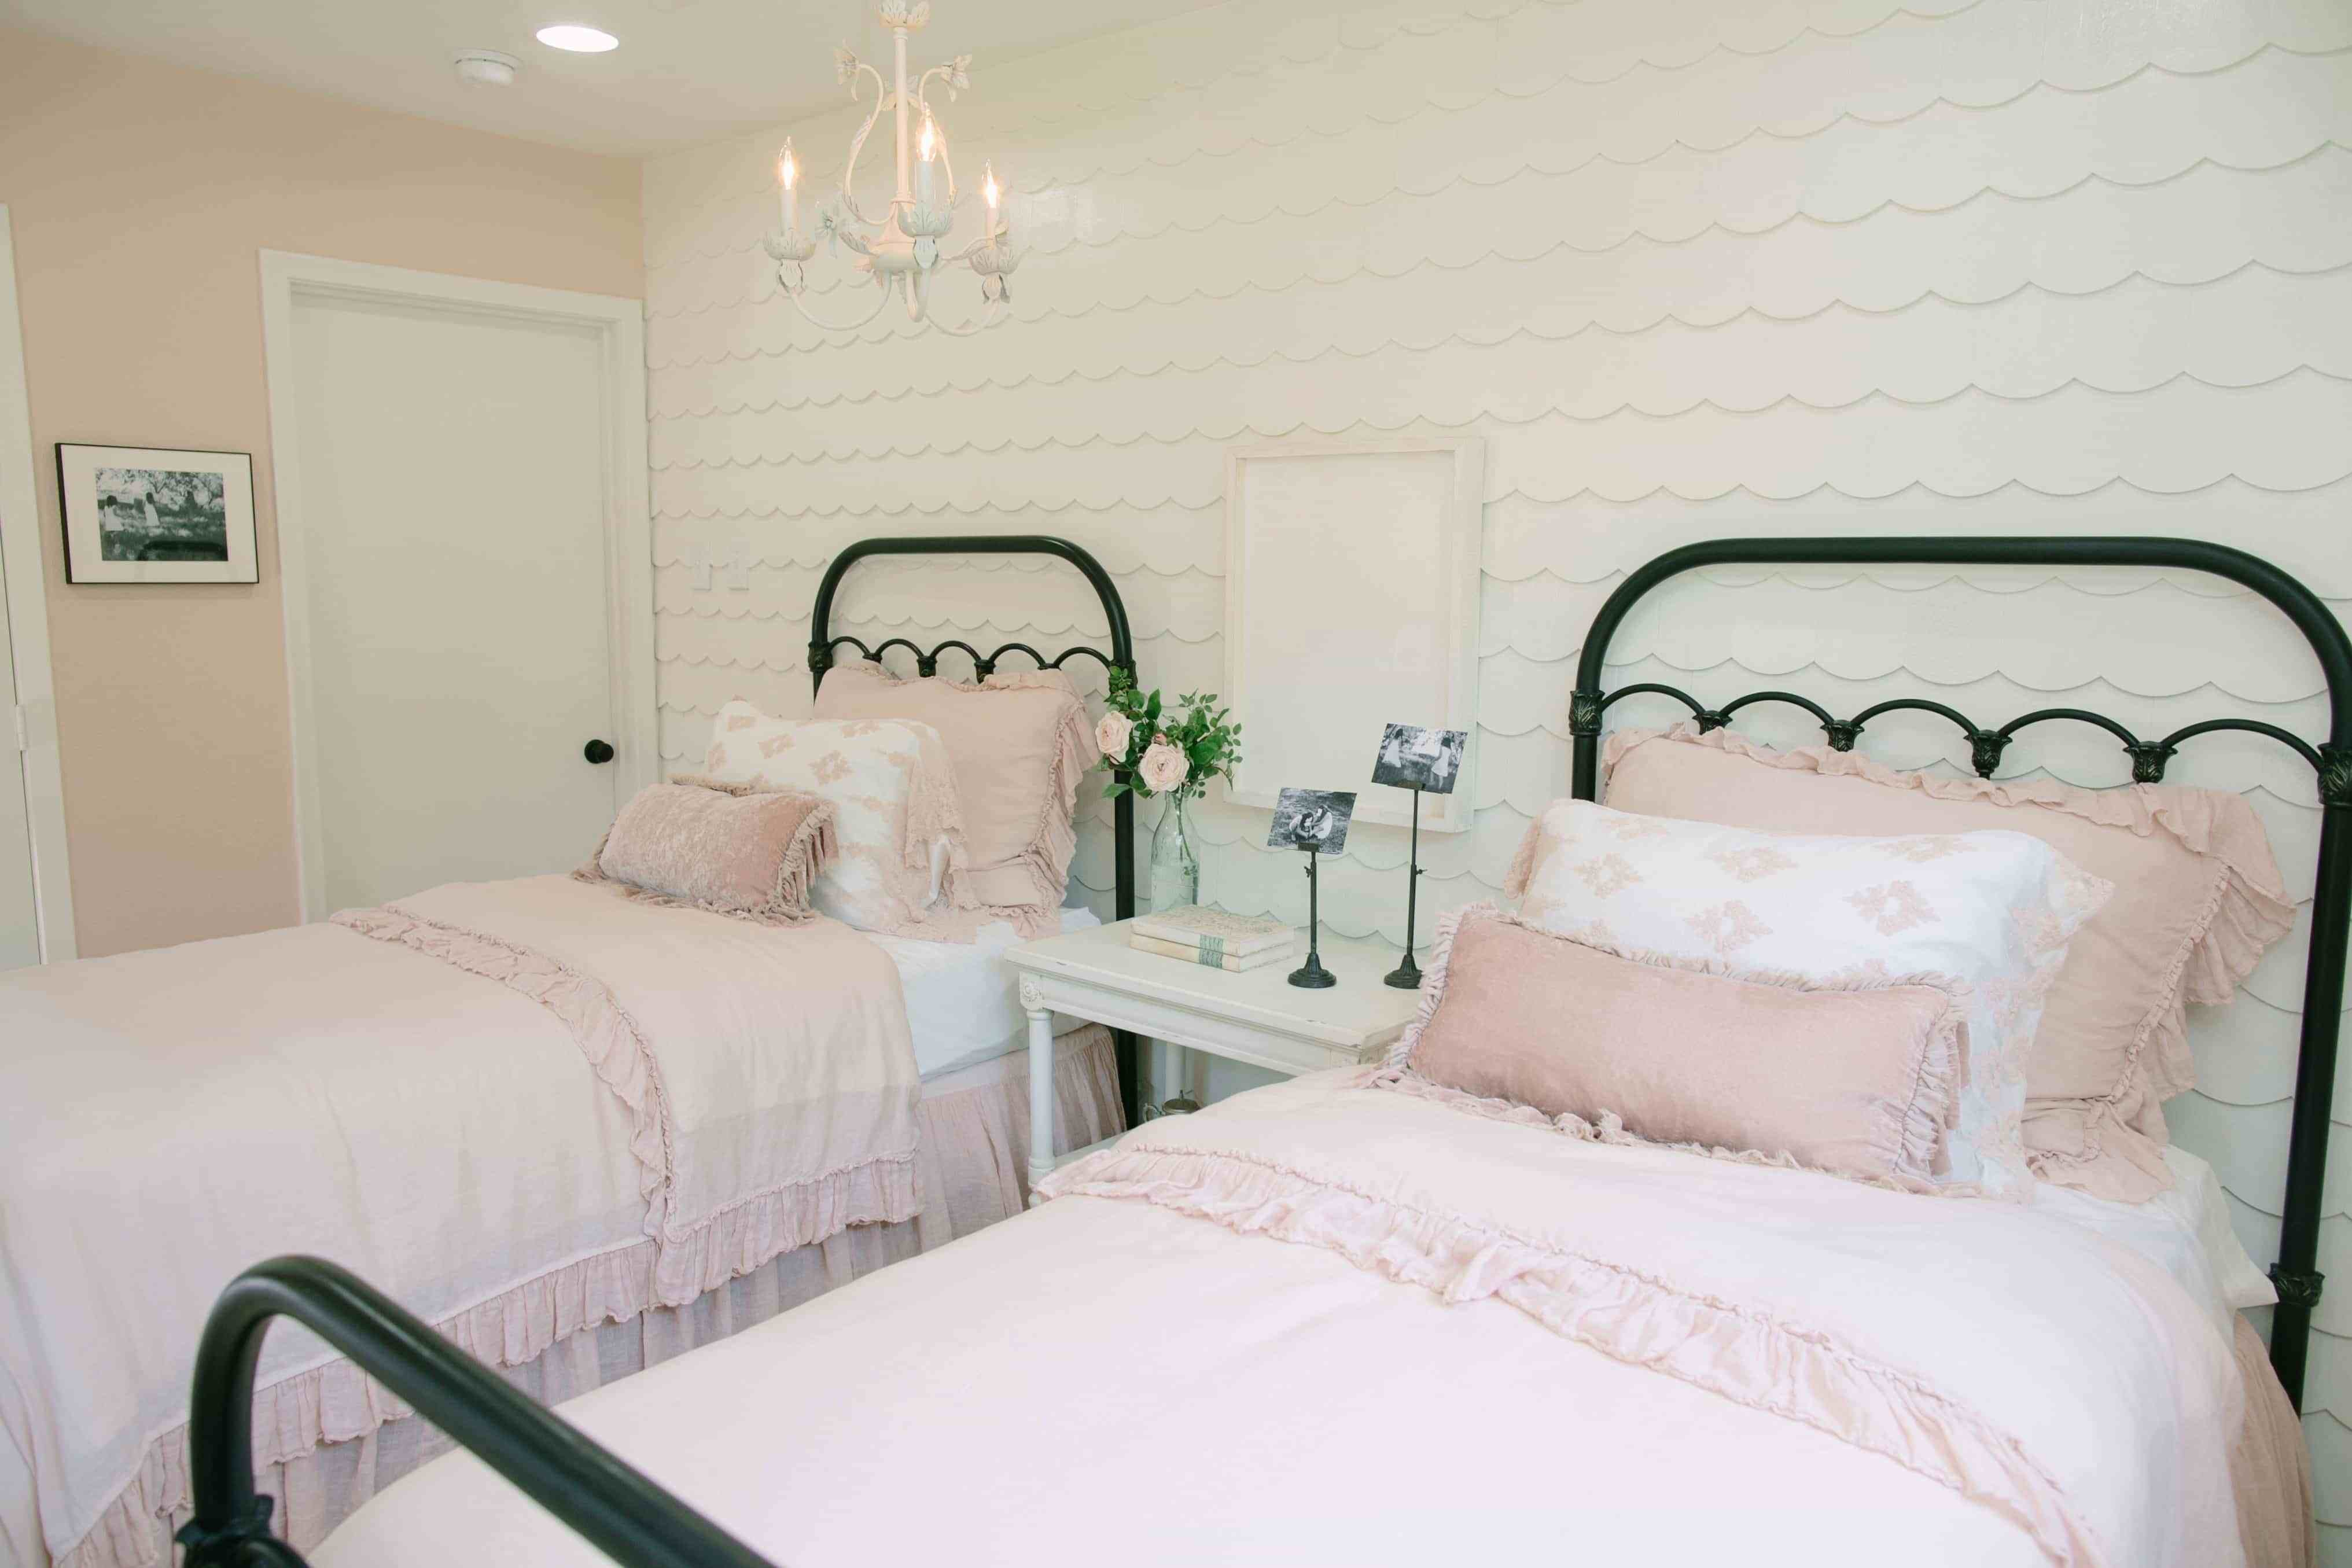 Best How To Decorate A Shabby Chic Bedroom 22944 Bedroom Ideas With Pictures